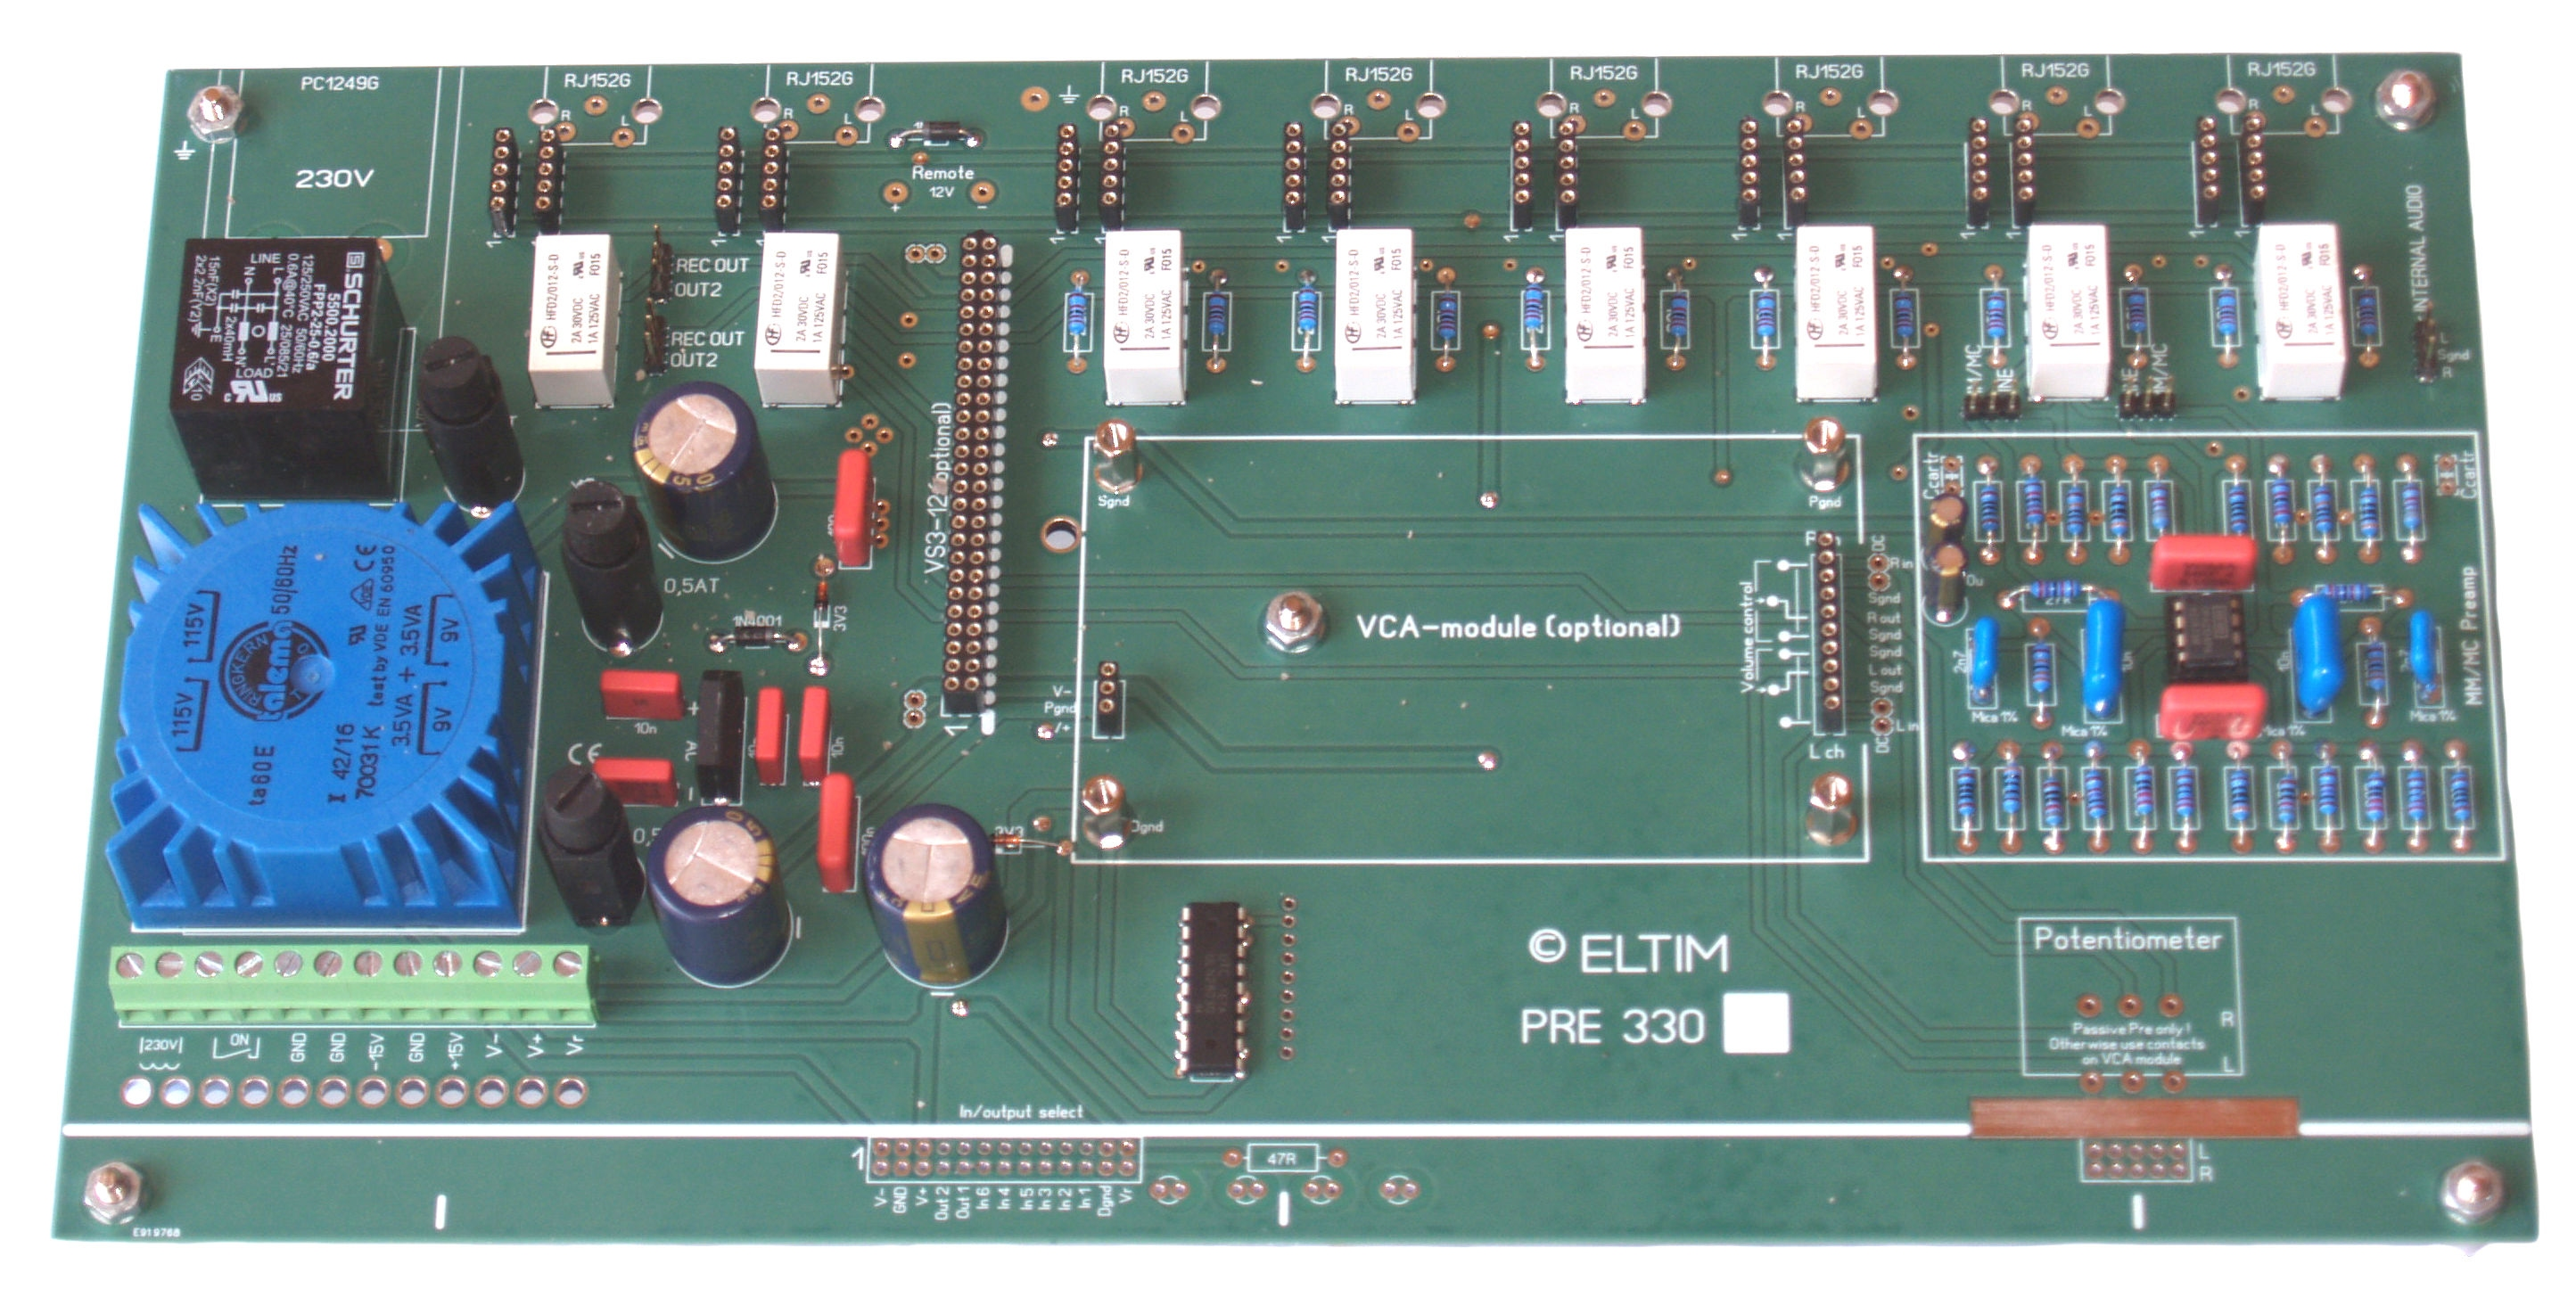 ELTIM Preamplifier modules